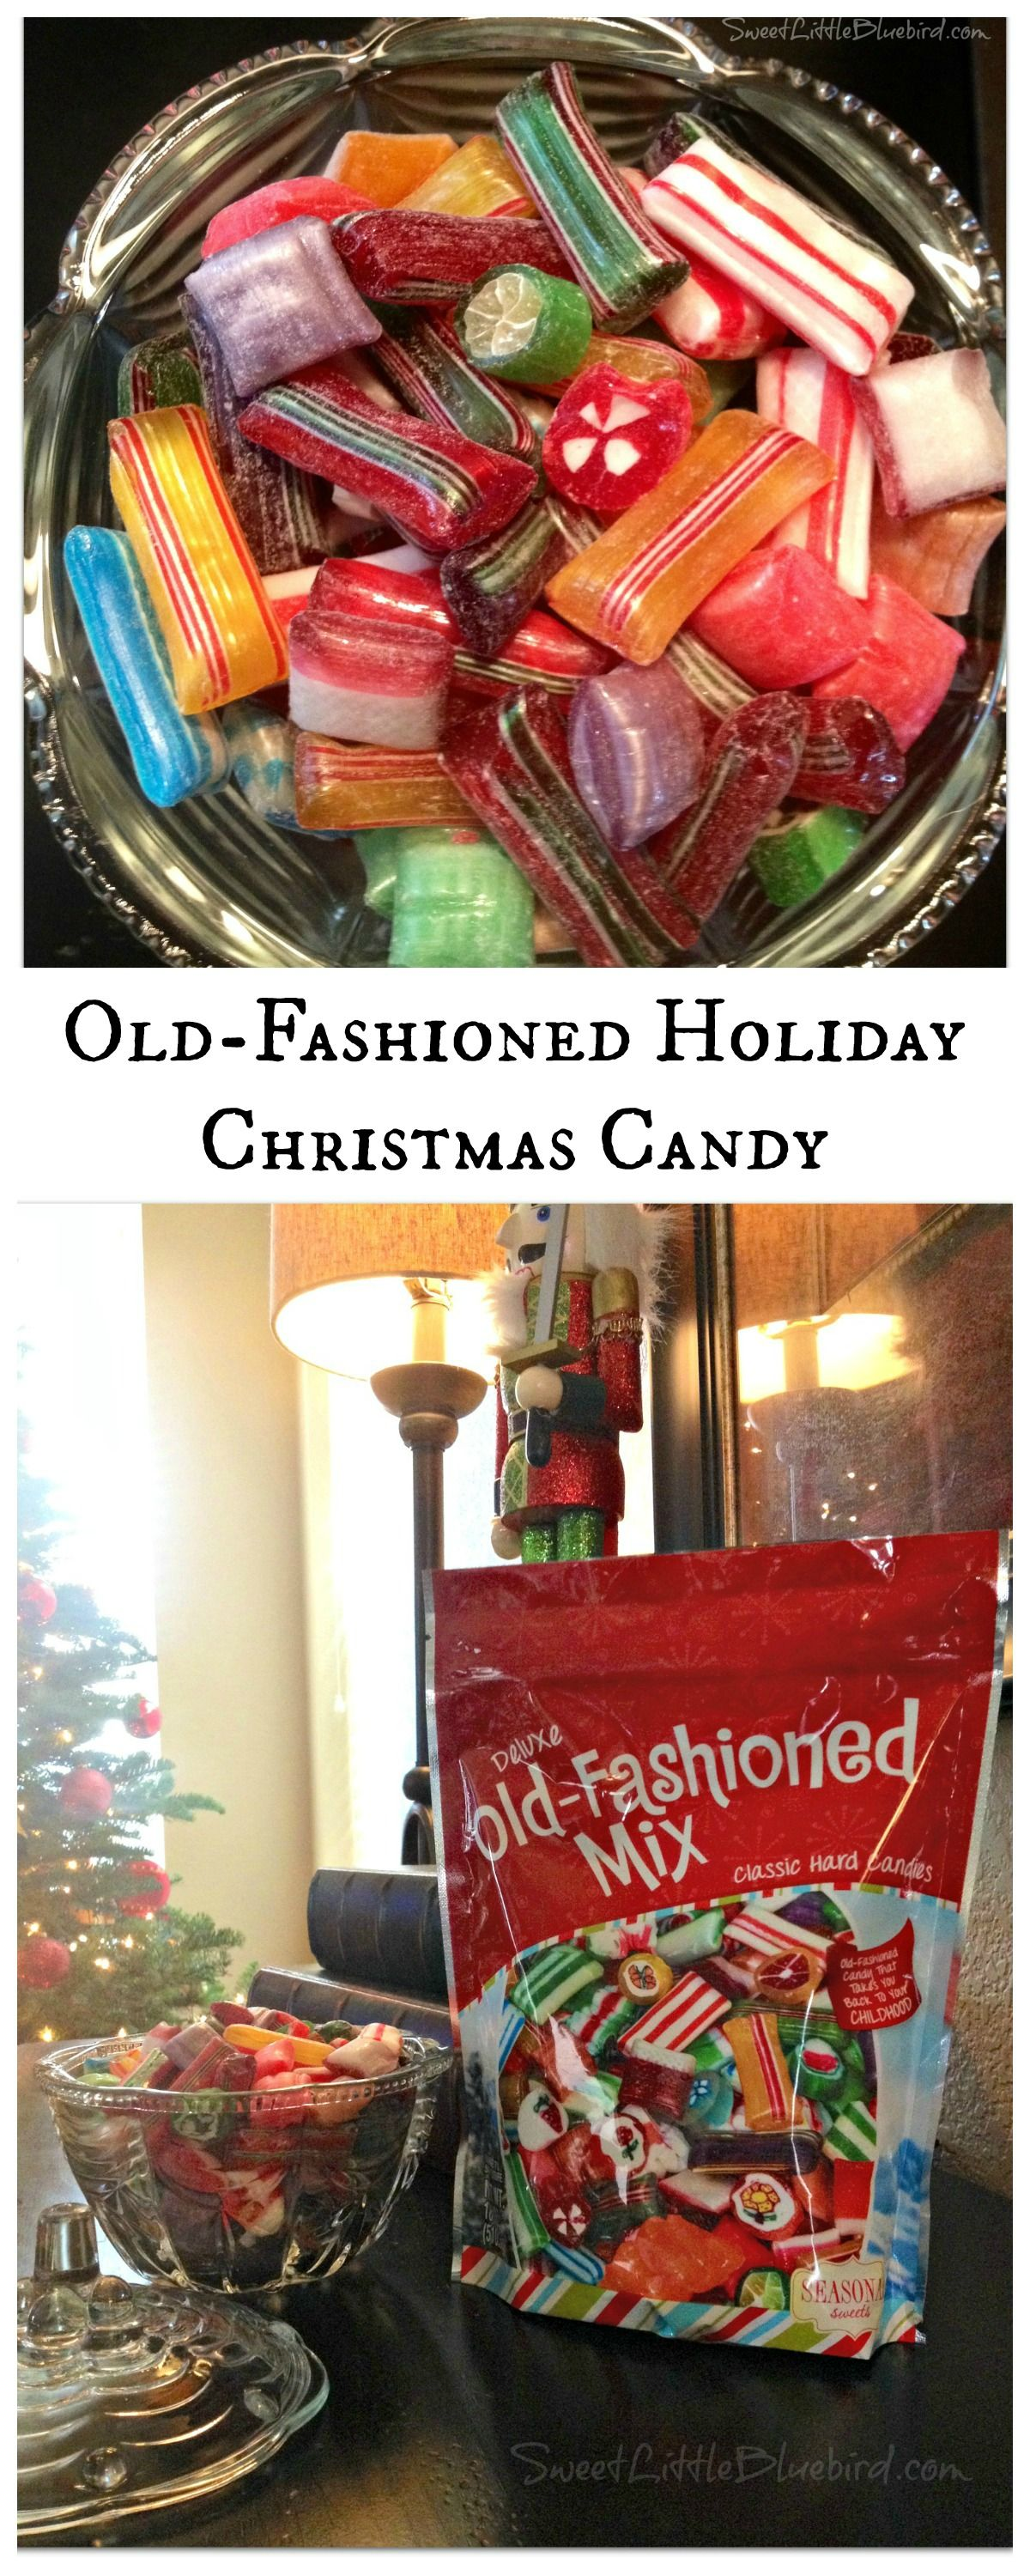 Old-Fashioned Holiday Christmas Candy | DIY Ideas | Pinterest ...